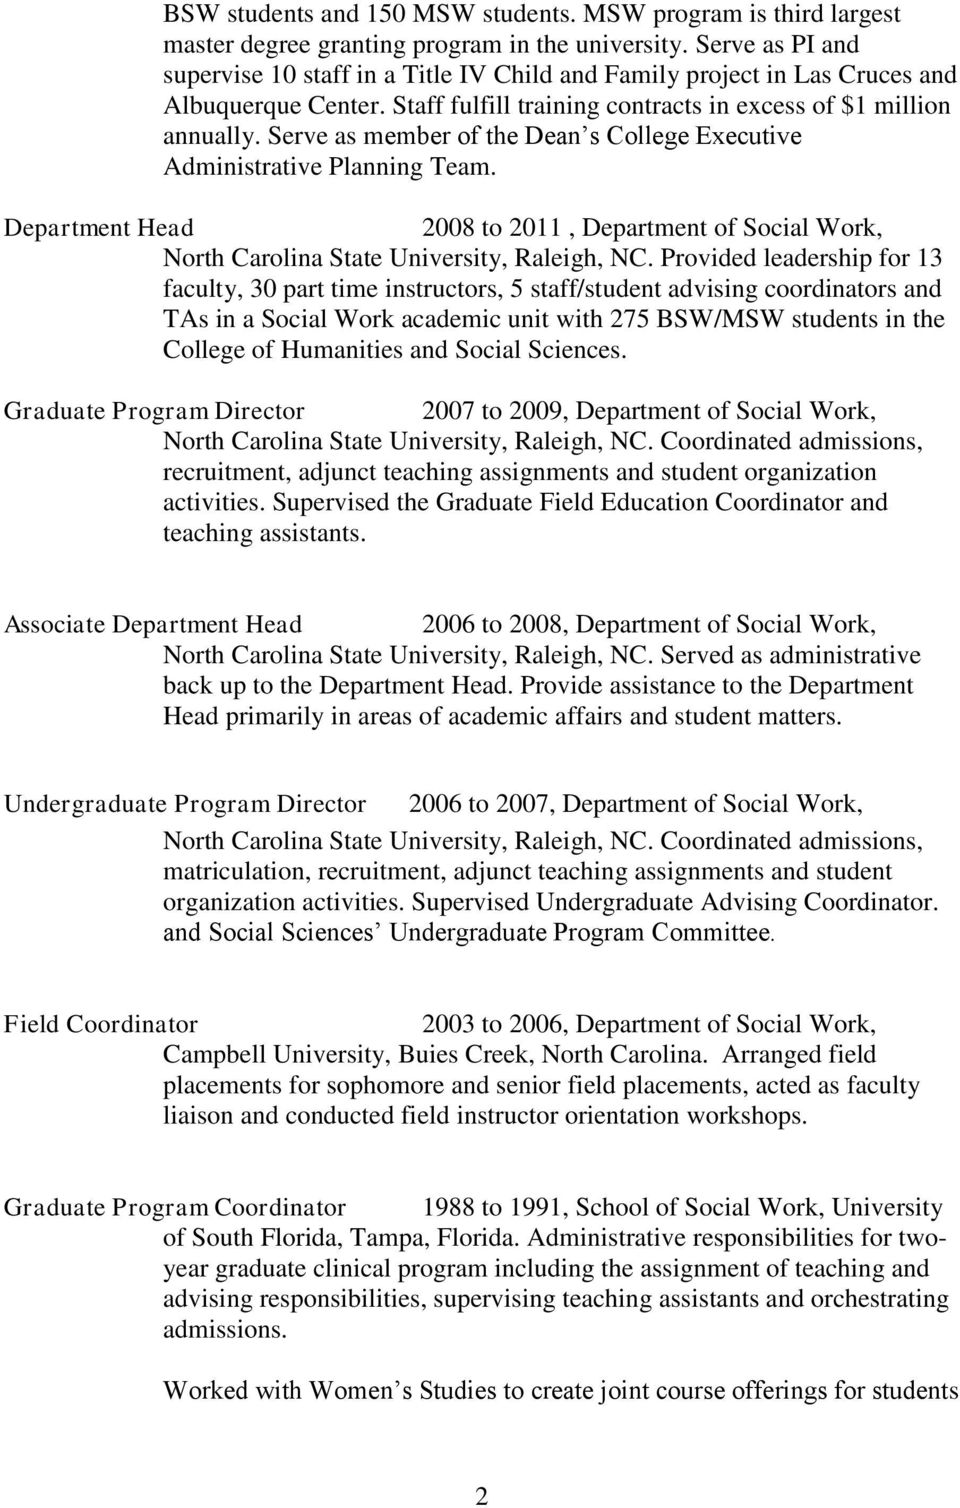 Serve as member of the Dean s College Executive Administrative Planning Team. Department Head 2008 to 2011, Department of Social Work, North Carolina State University, Raleigh, NC.